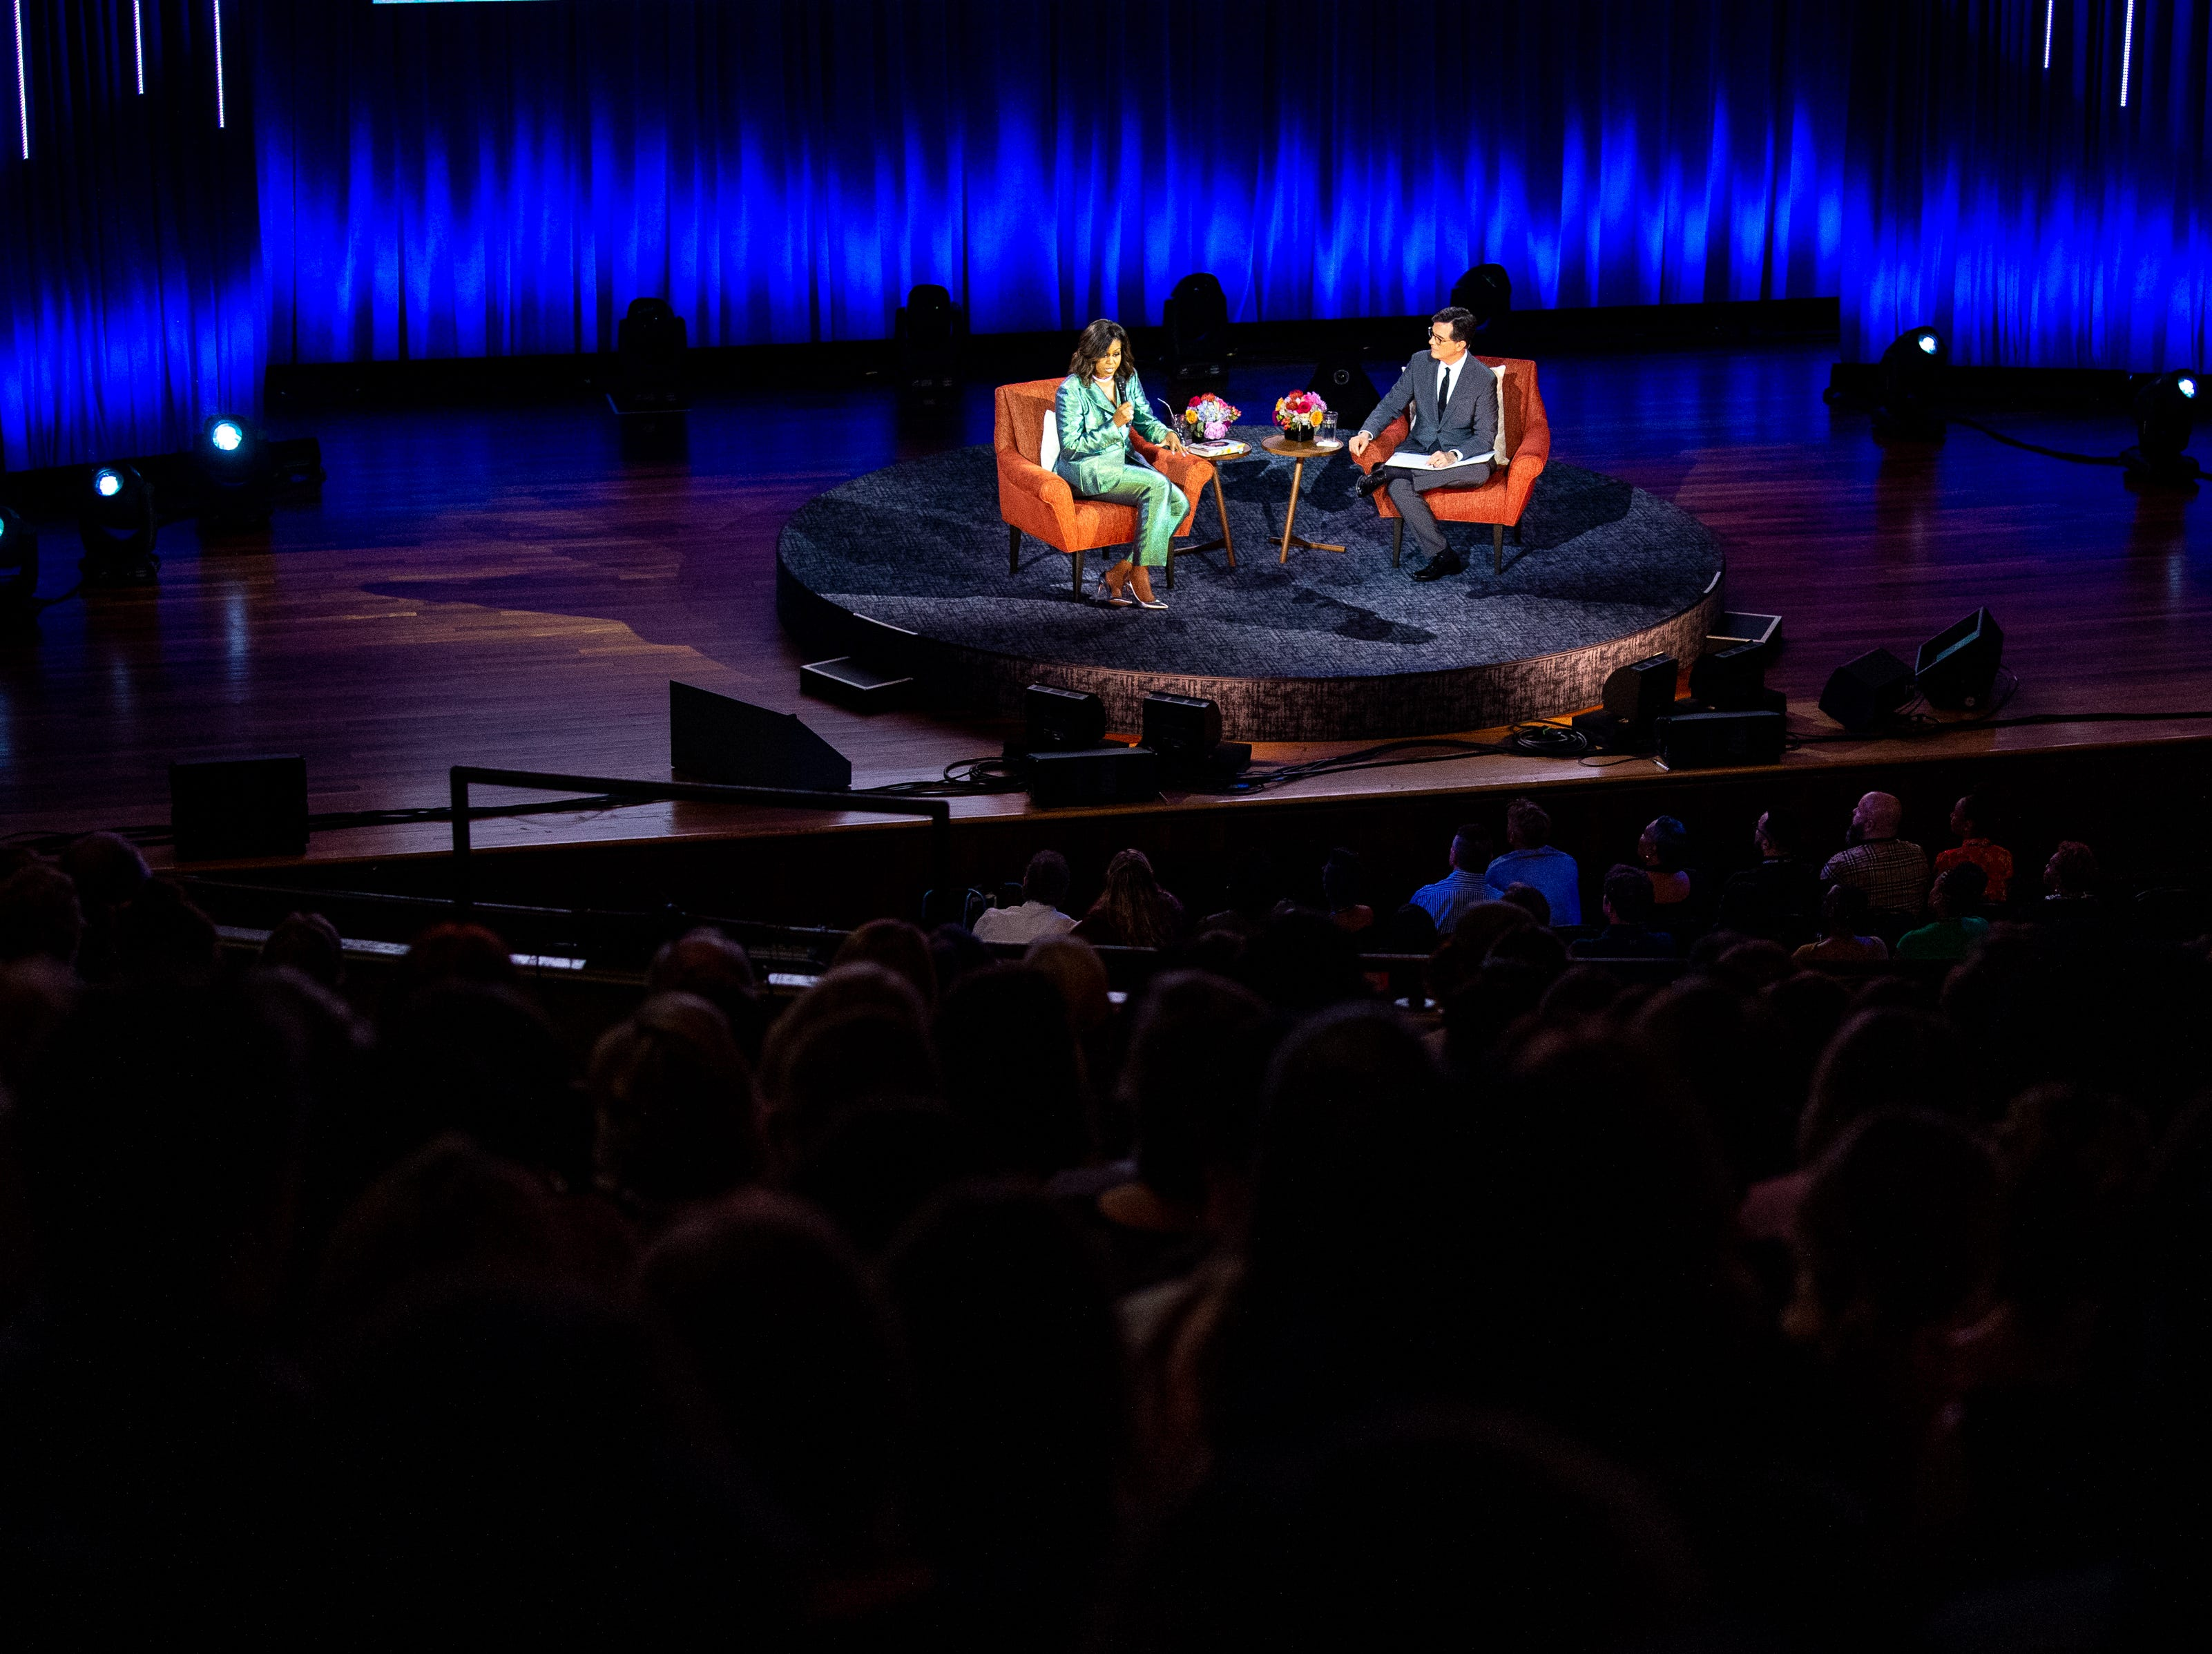 Michelle Obama speaks with Stephen Colbert during her Becoming: An Intimate Conversation with Michelle Obama event at Ryman Auditorium Sunday, May 12, 2019, in Nashville, Tenn.